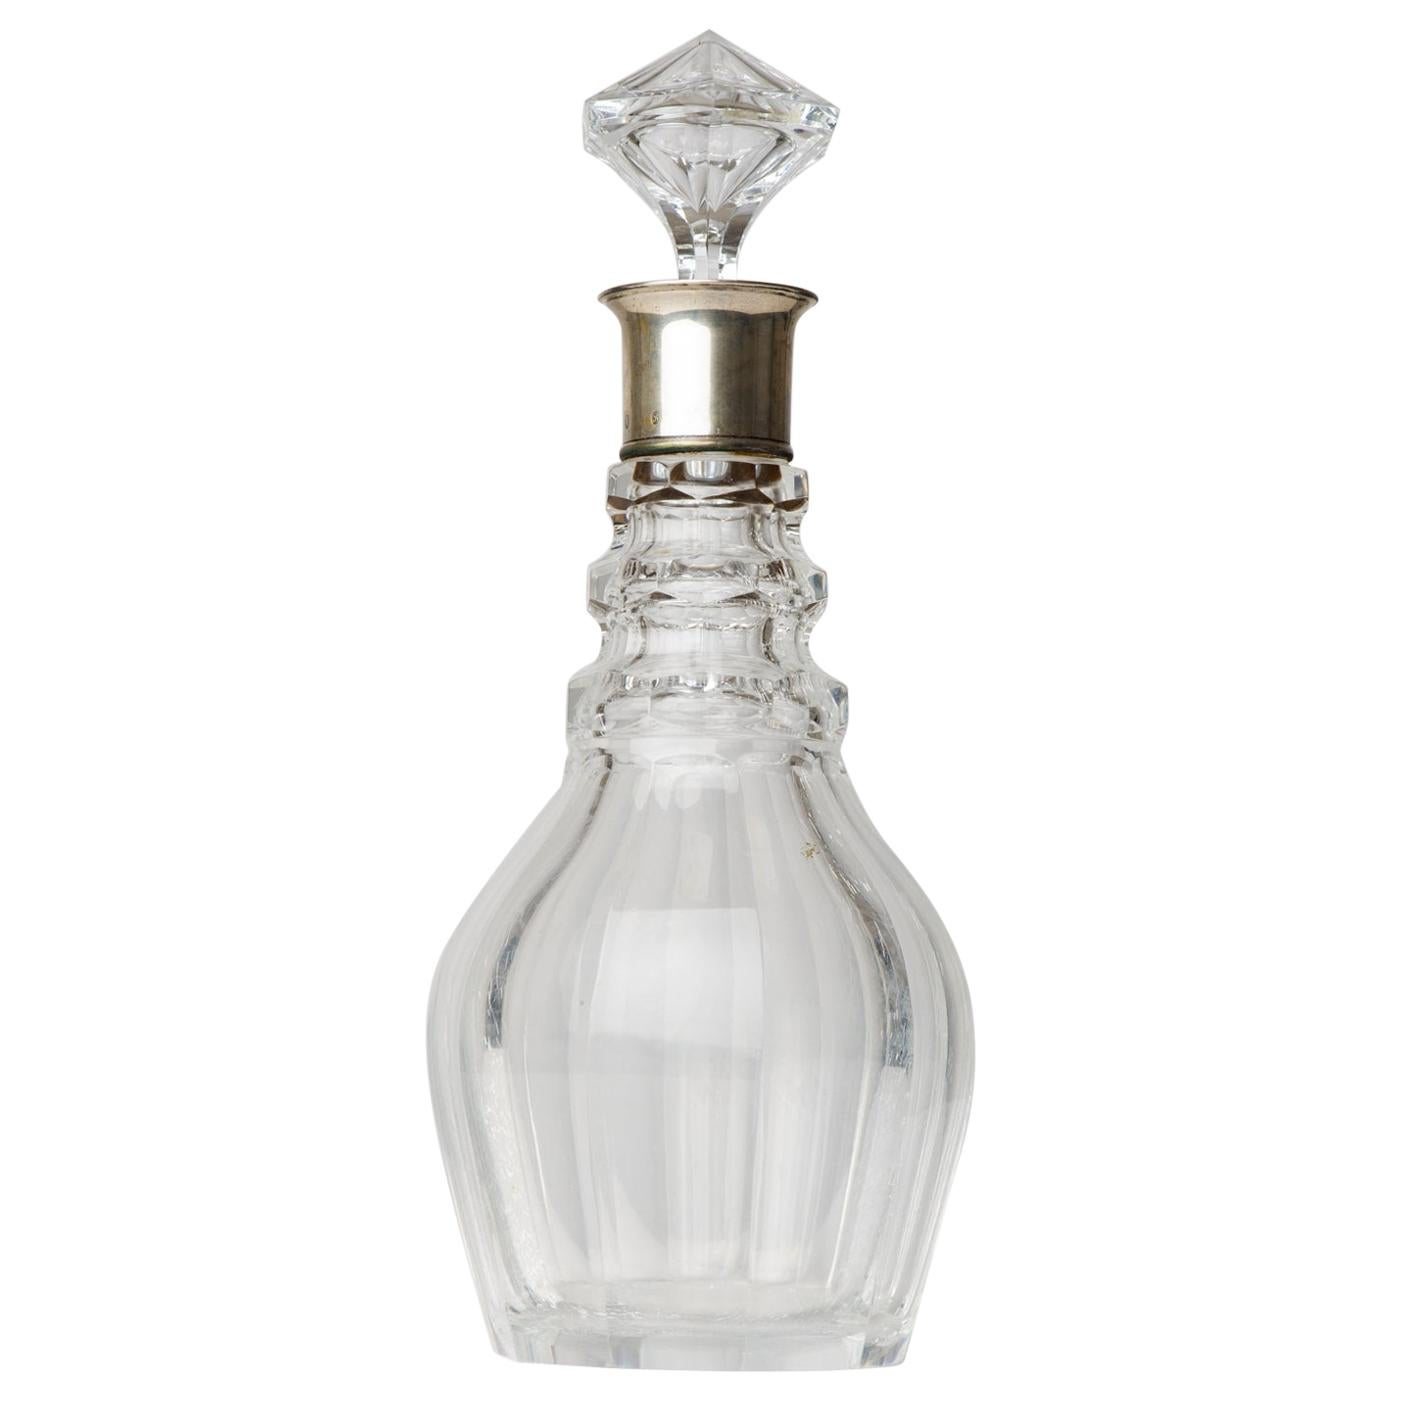 Crystal Bottle Decanter with Silver Neck